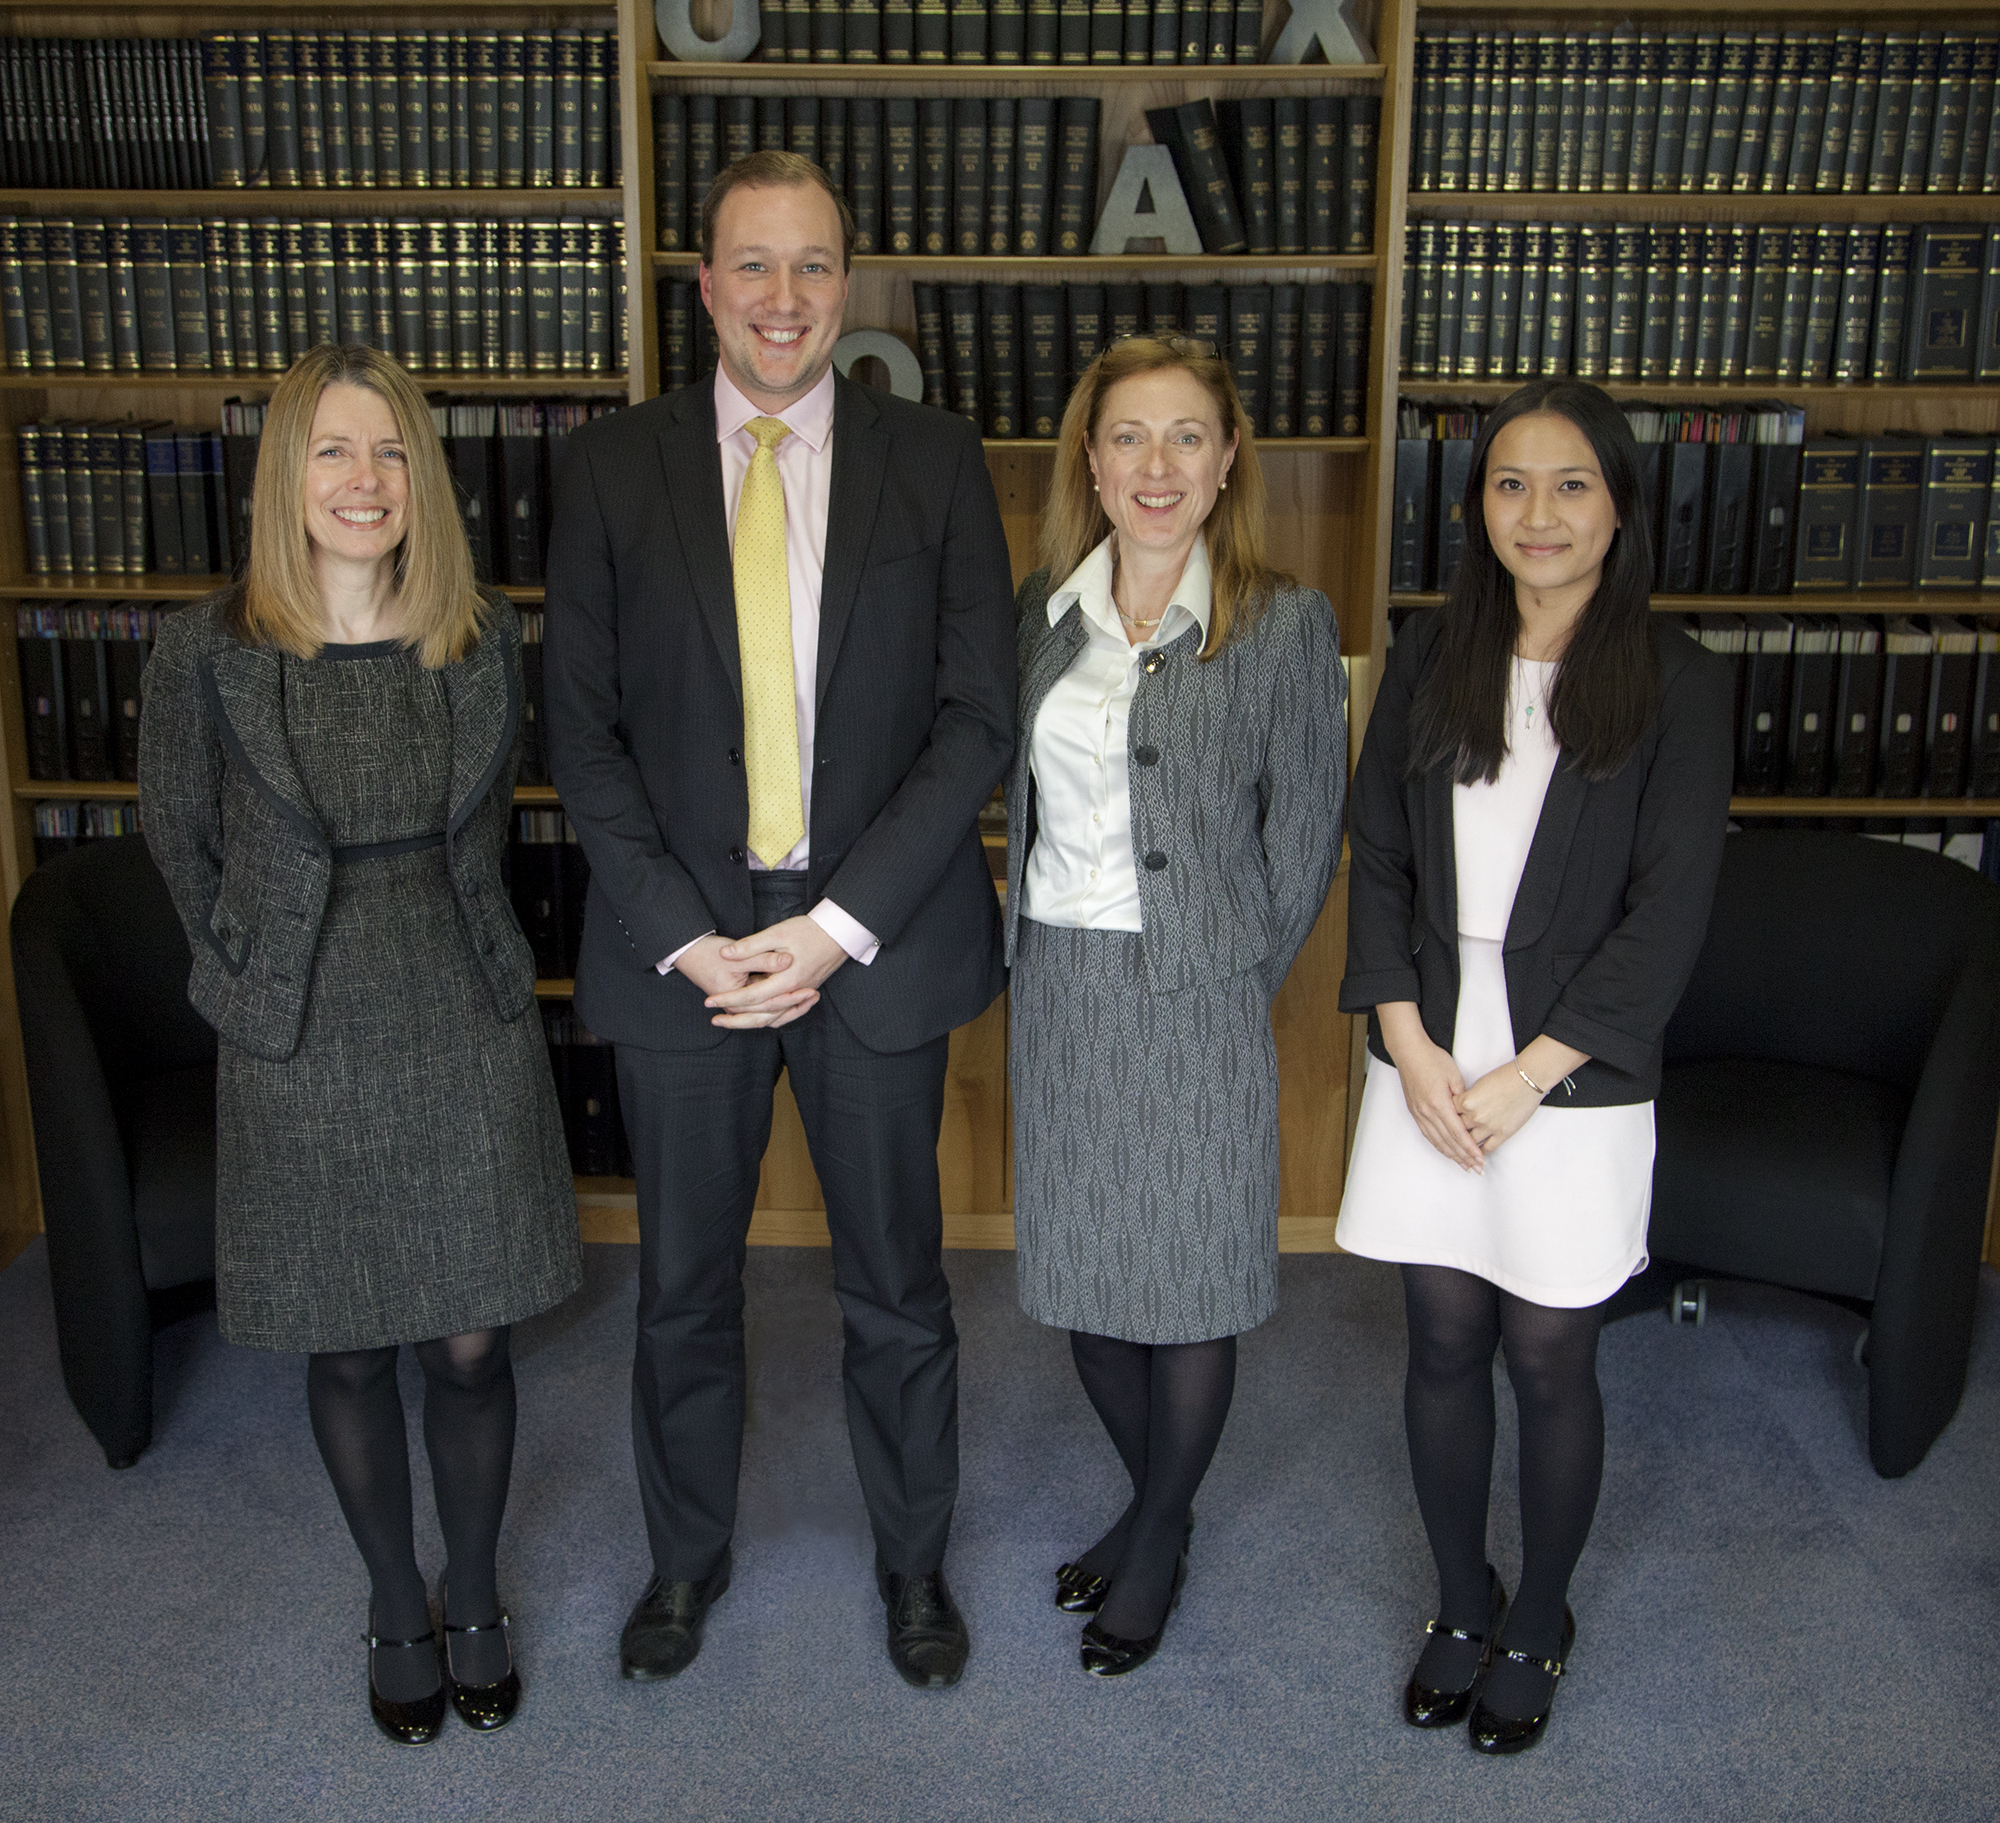 Geldards Family Law Team - Spring 2016.jpg